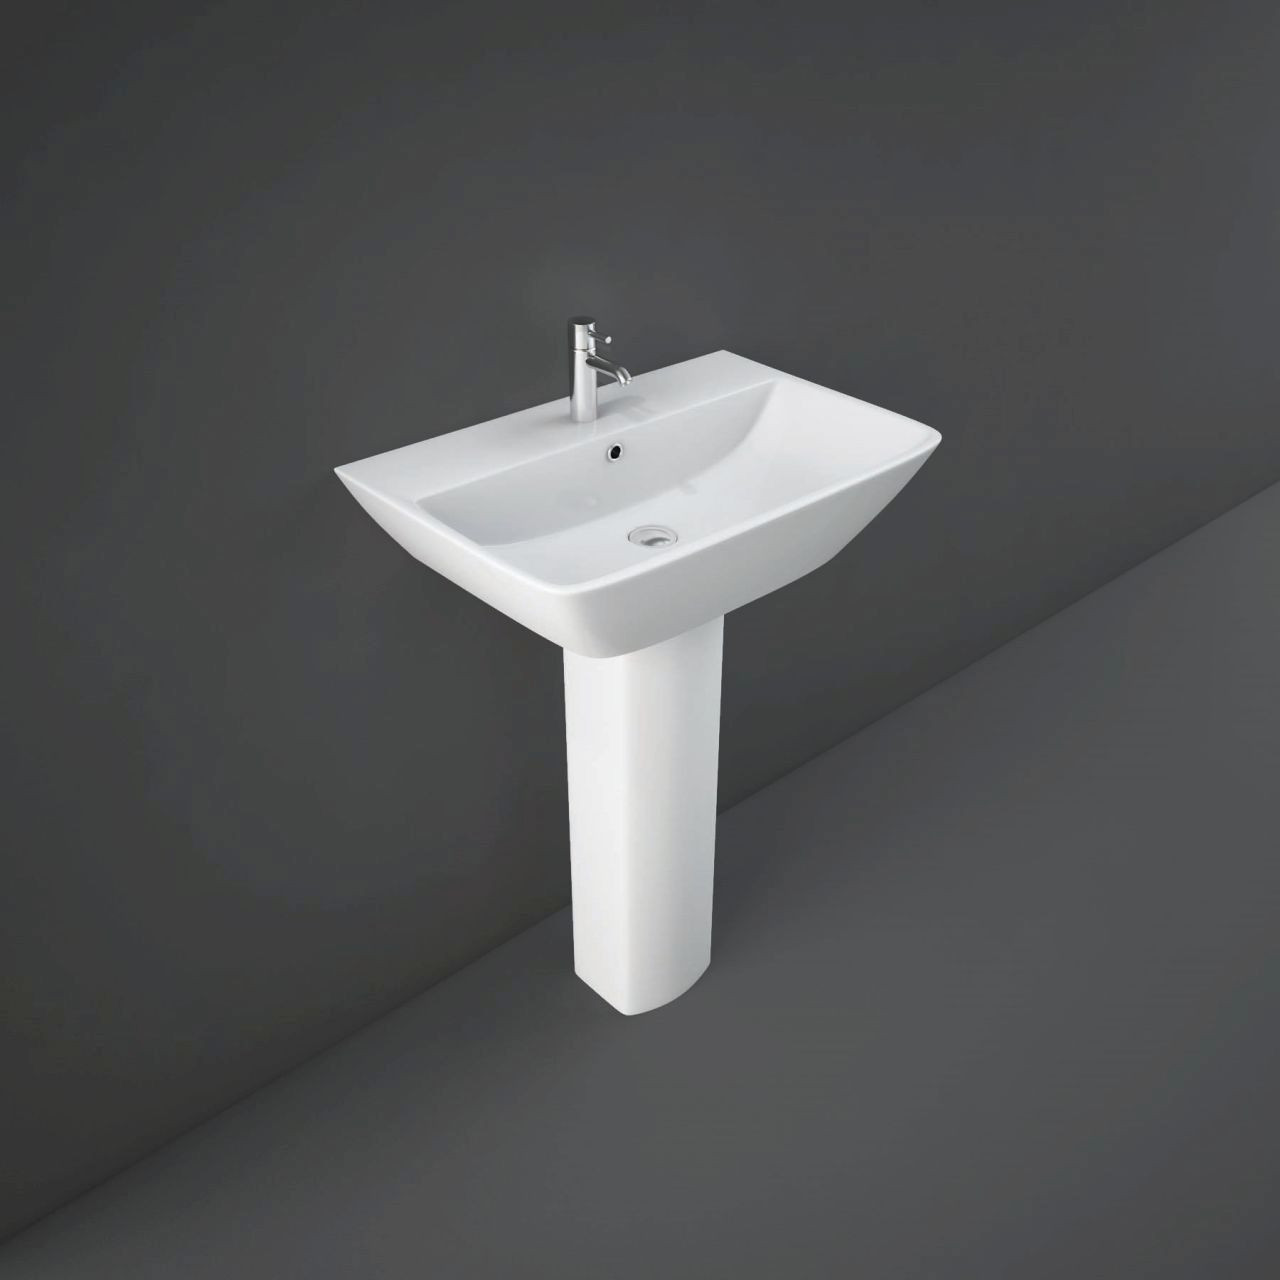 RAK Summit 600mm Wall Hung Basin with 1 Tap Hole and Full Pedestal